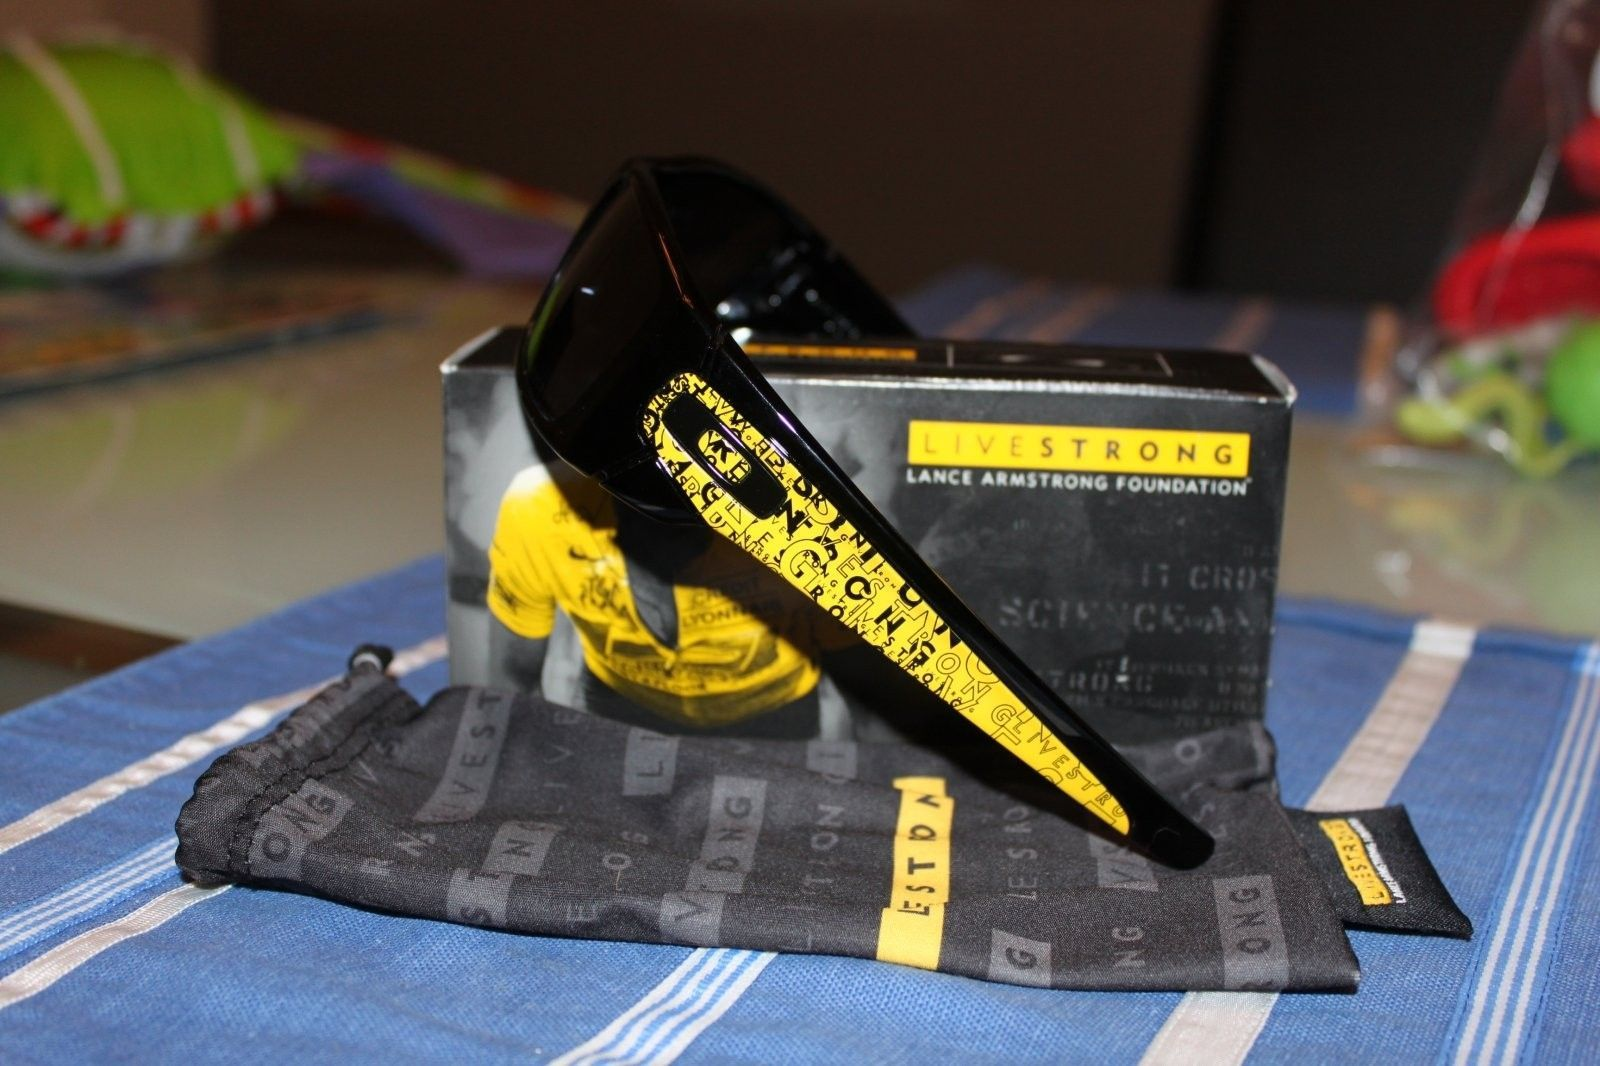 Livestrong Fuel Cell - IMG_5703.JPG